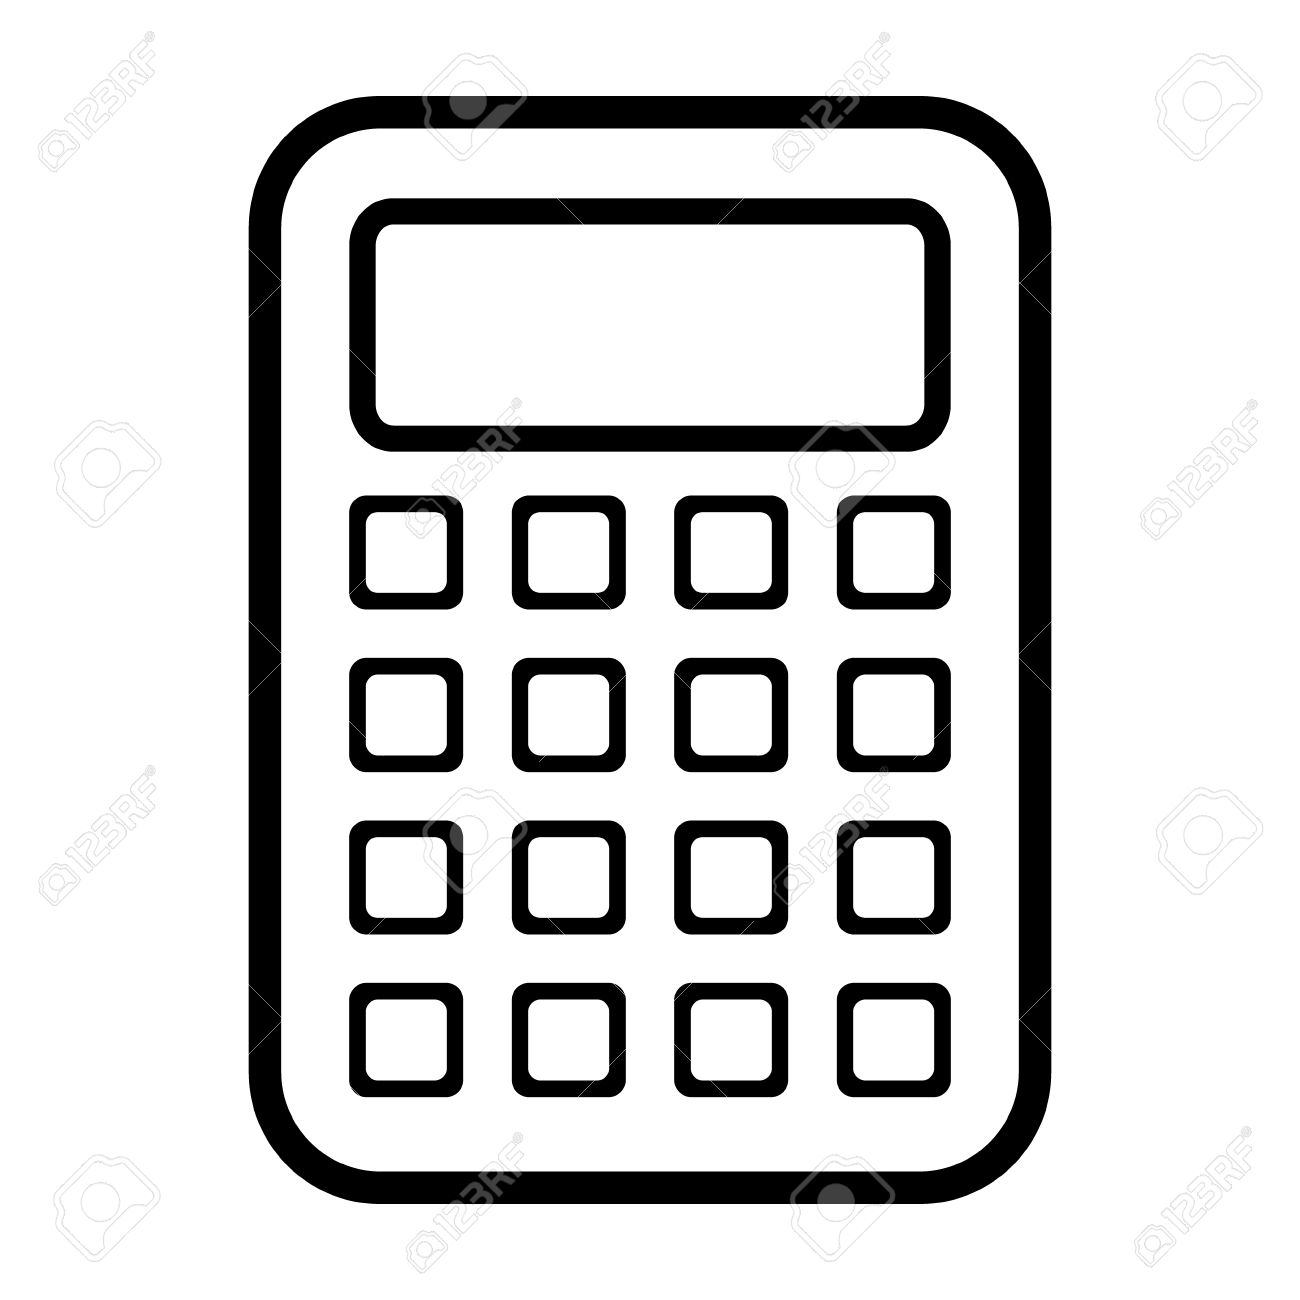 calculator icon on white background royalty free cliparts vectors